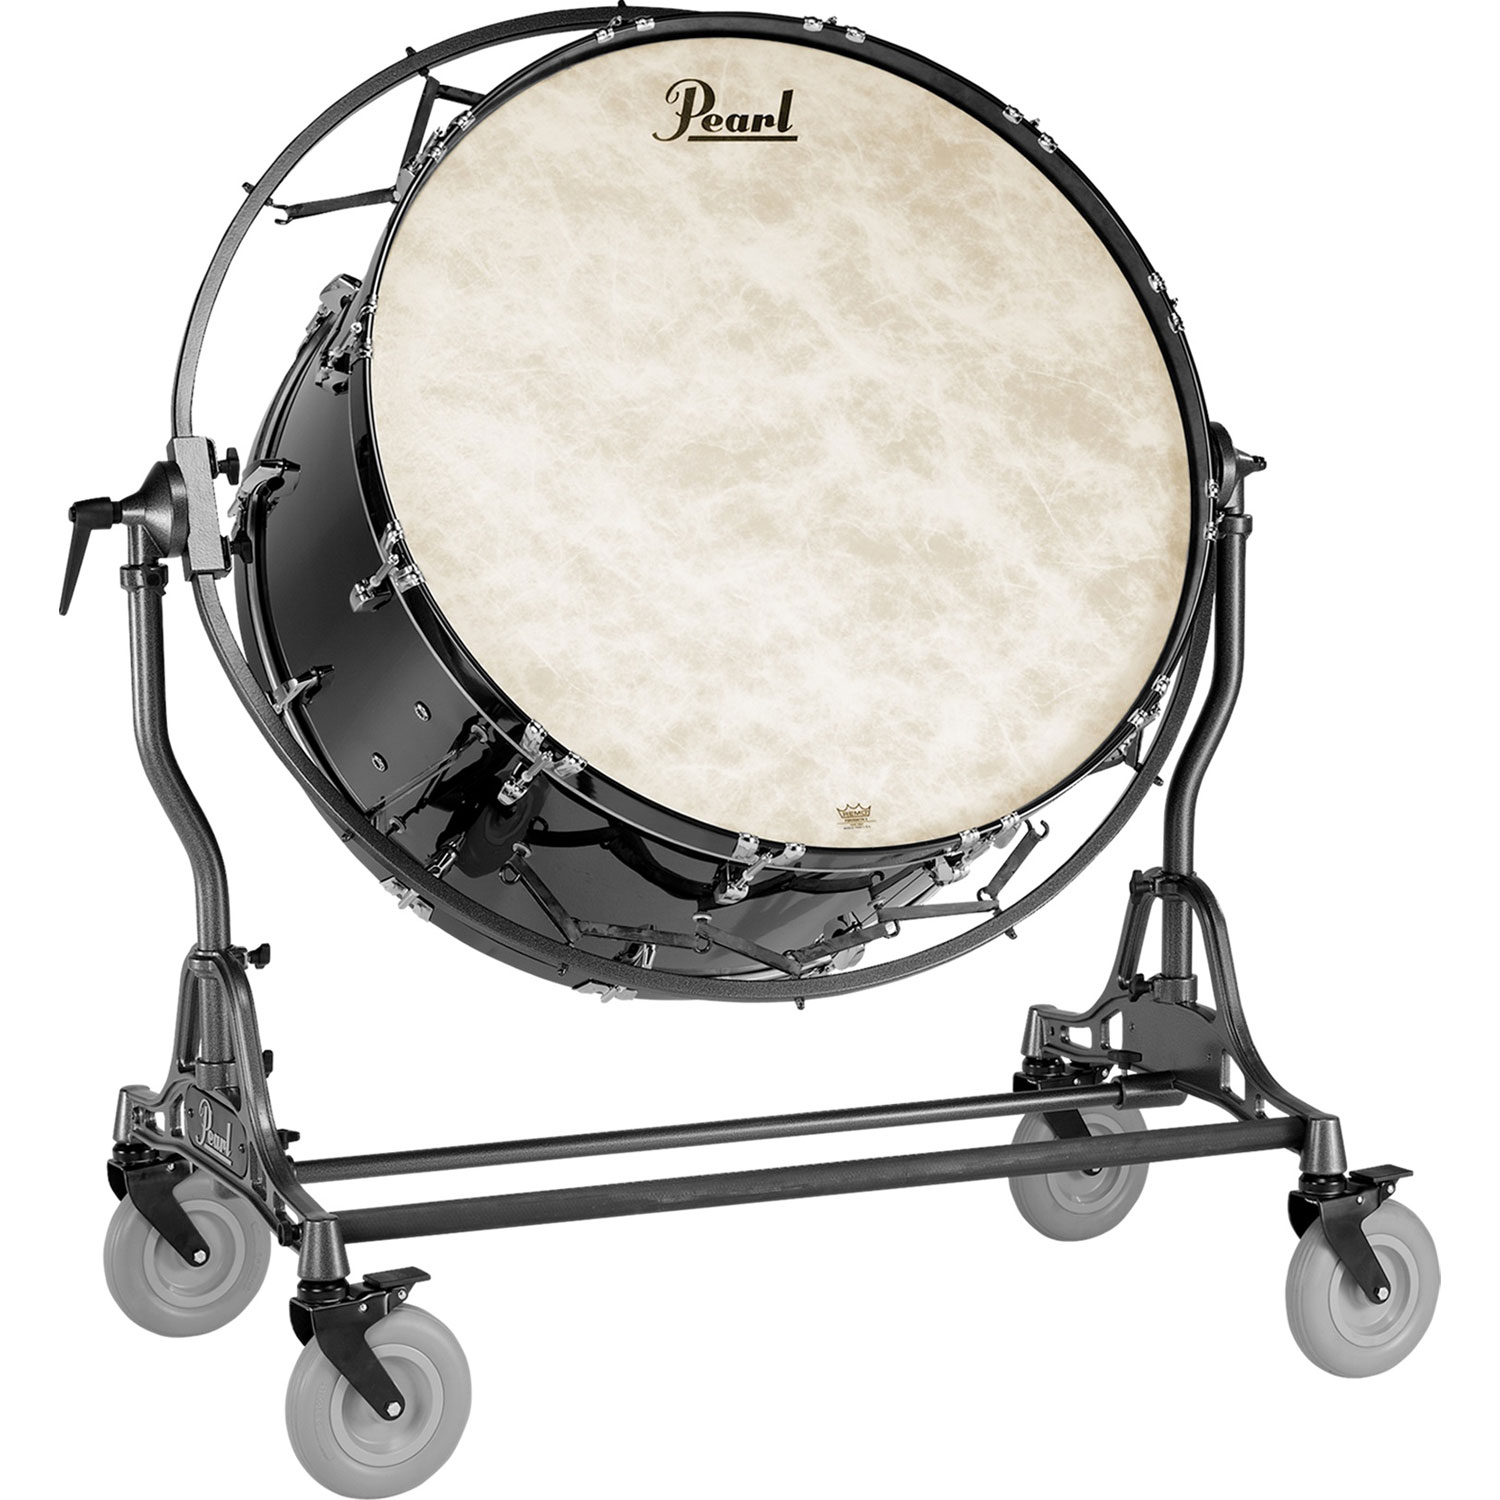 "Pearl 28"" (Diameter) x 14"" (Deep) Concert Series Kapur Concert Bass Drum with STBD Stand"